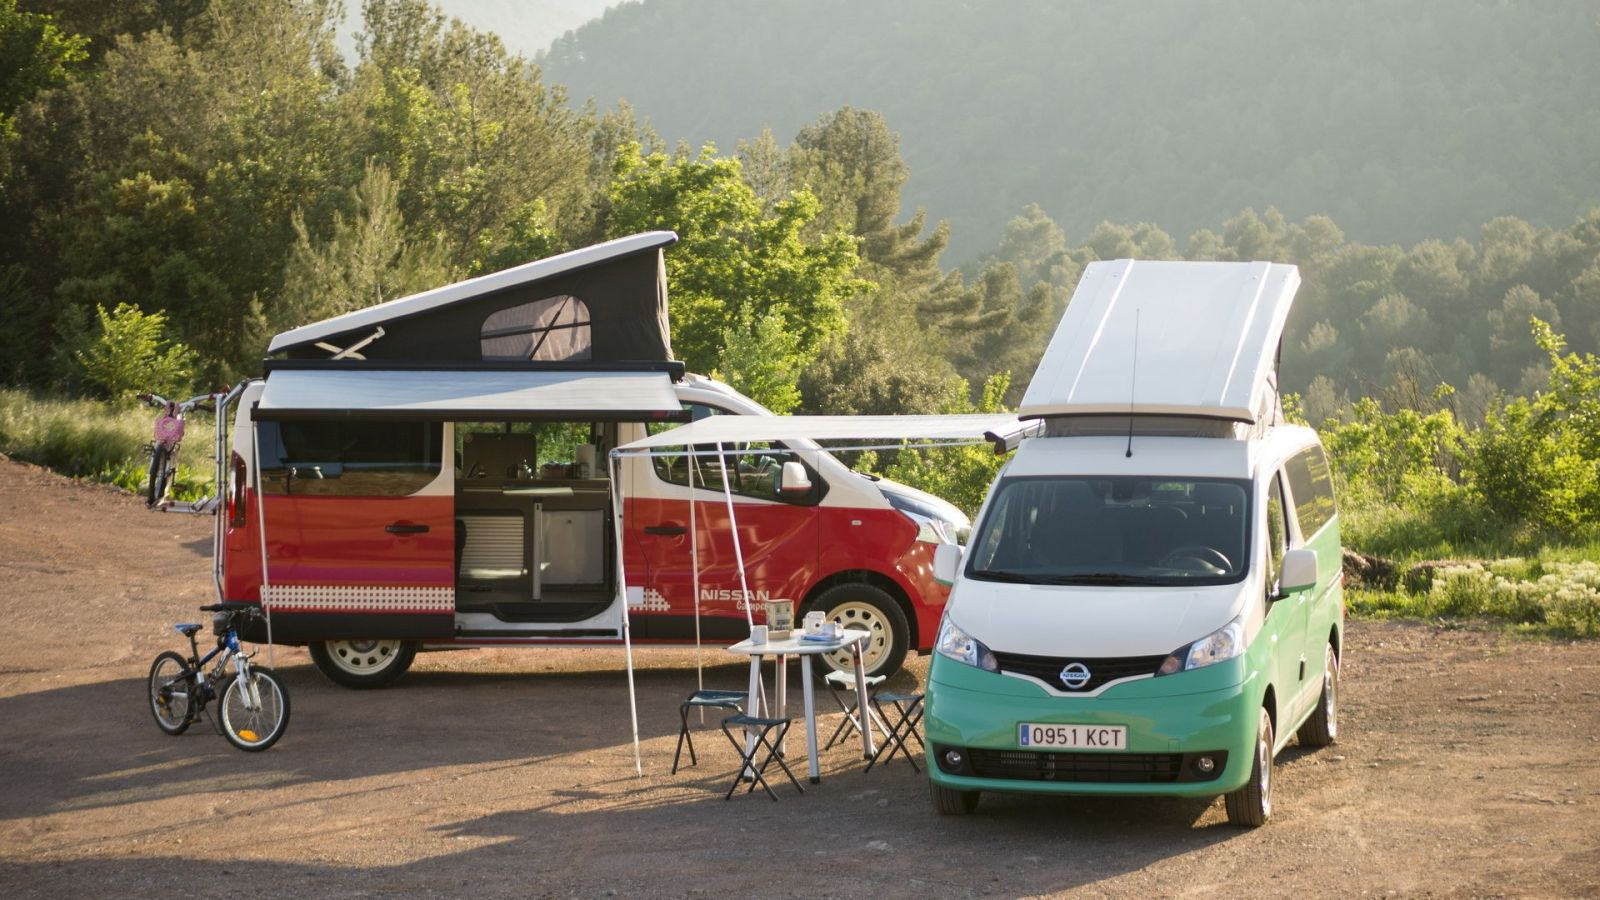 Nissan e-NV200 and NV300 Camper Vans